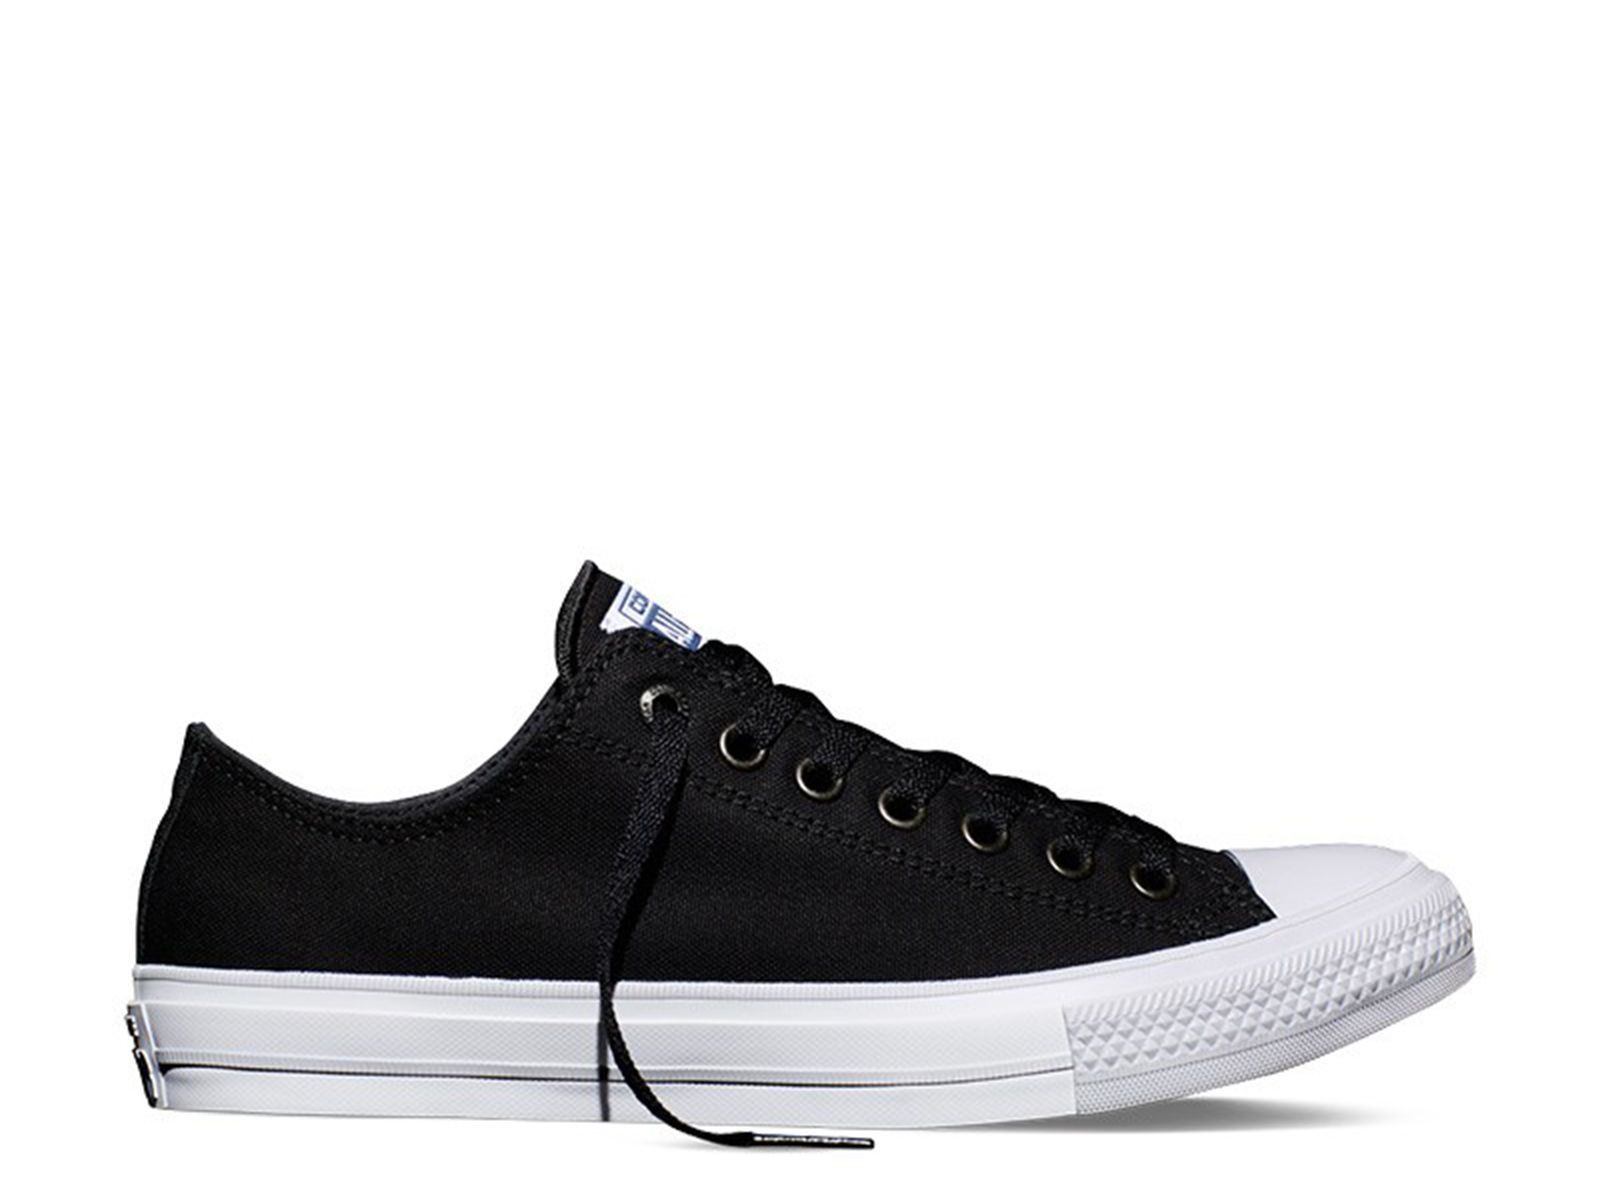 427bfd4e094d Brand New Converse Chuck Taylor All Star II OX 70 Men Fashion Sneakers   150149C